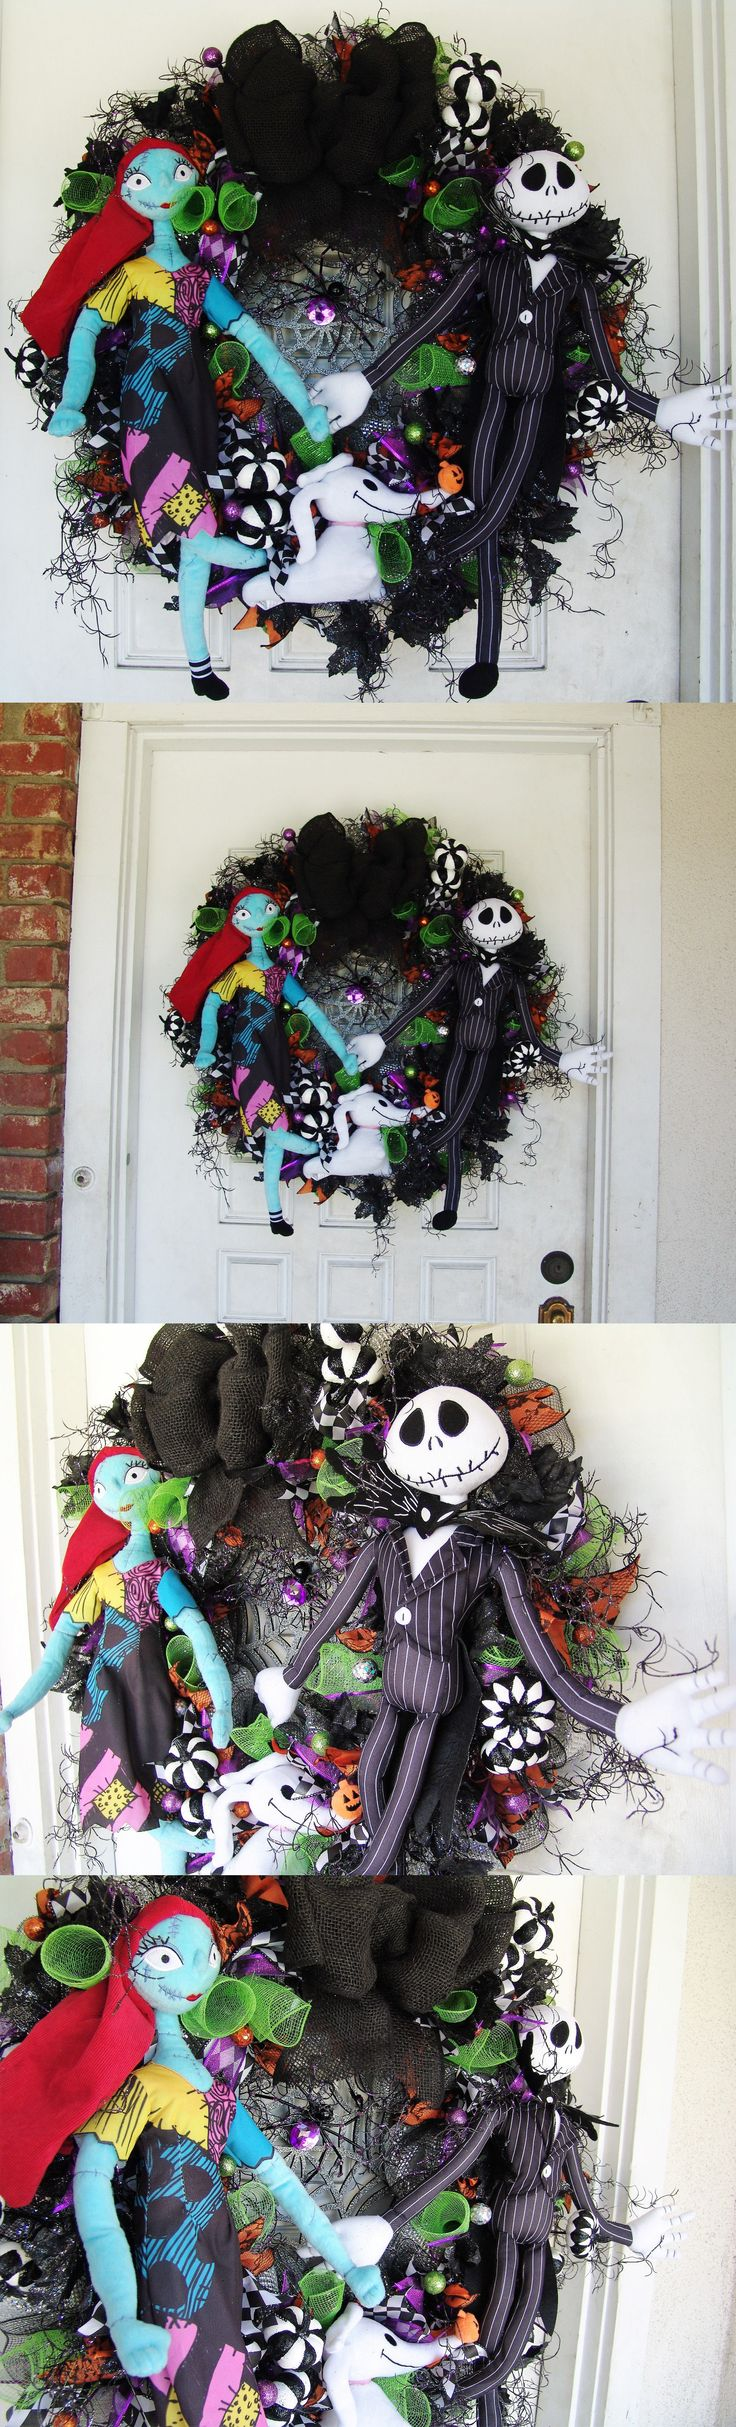 Diy jack skellington s body nightmare before christmas youtube - Nightmare Before Christmas 36586 Xxl Jack Skellington Sally Zero Nightmare Before Christmas Halloween Door Wreath